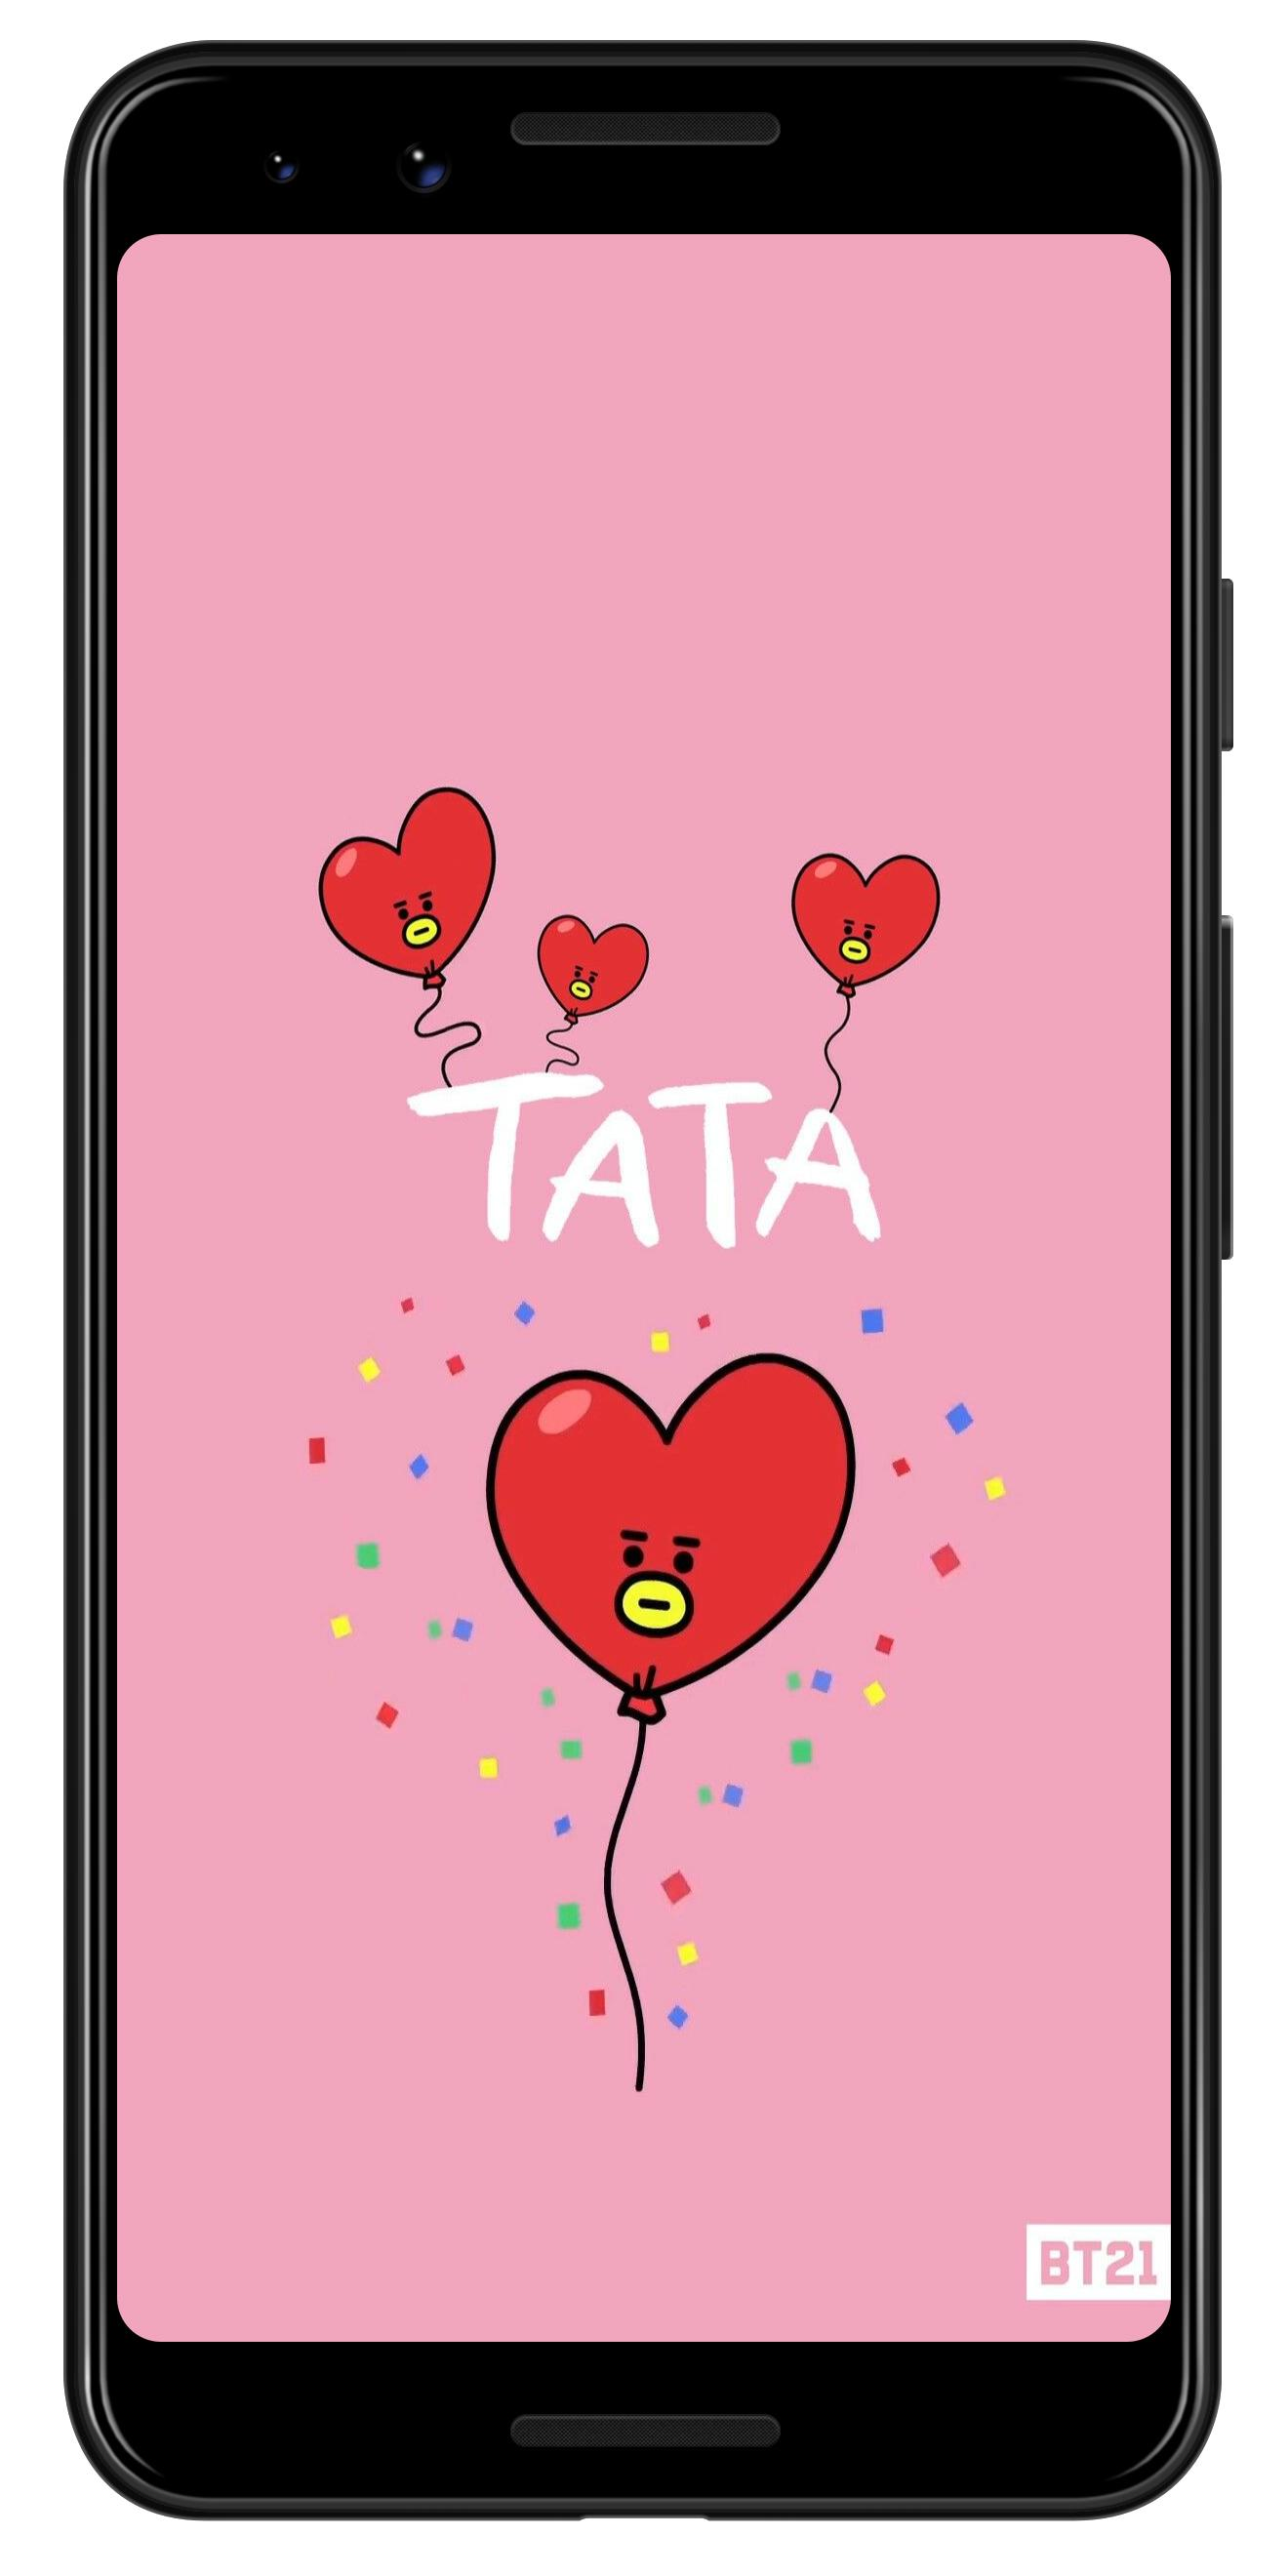 Bt21 Hd Wallpapers And Backgrounds For Android Apk Download